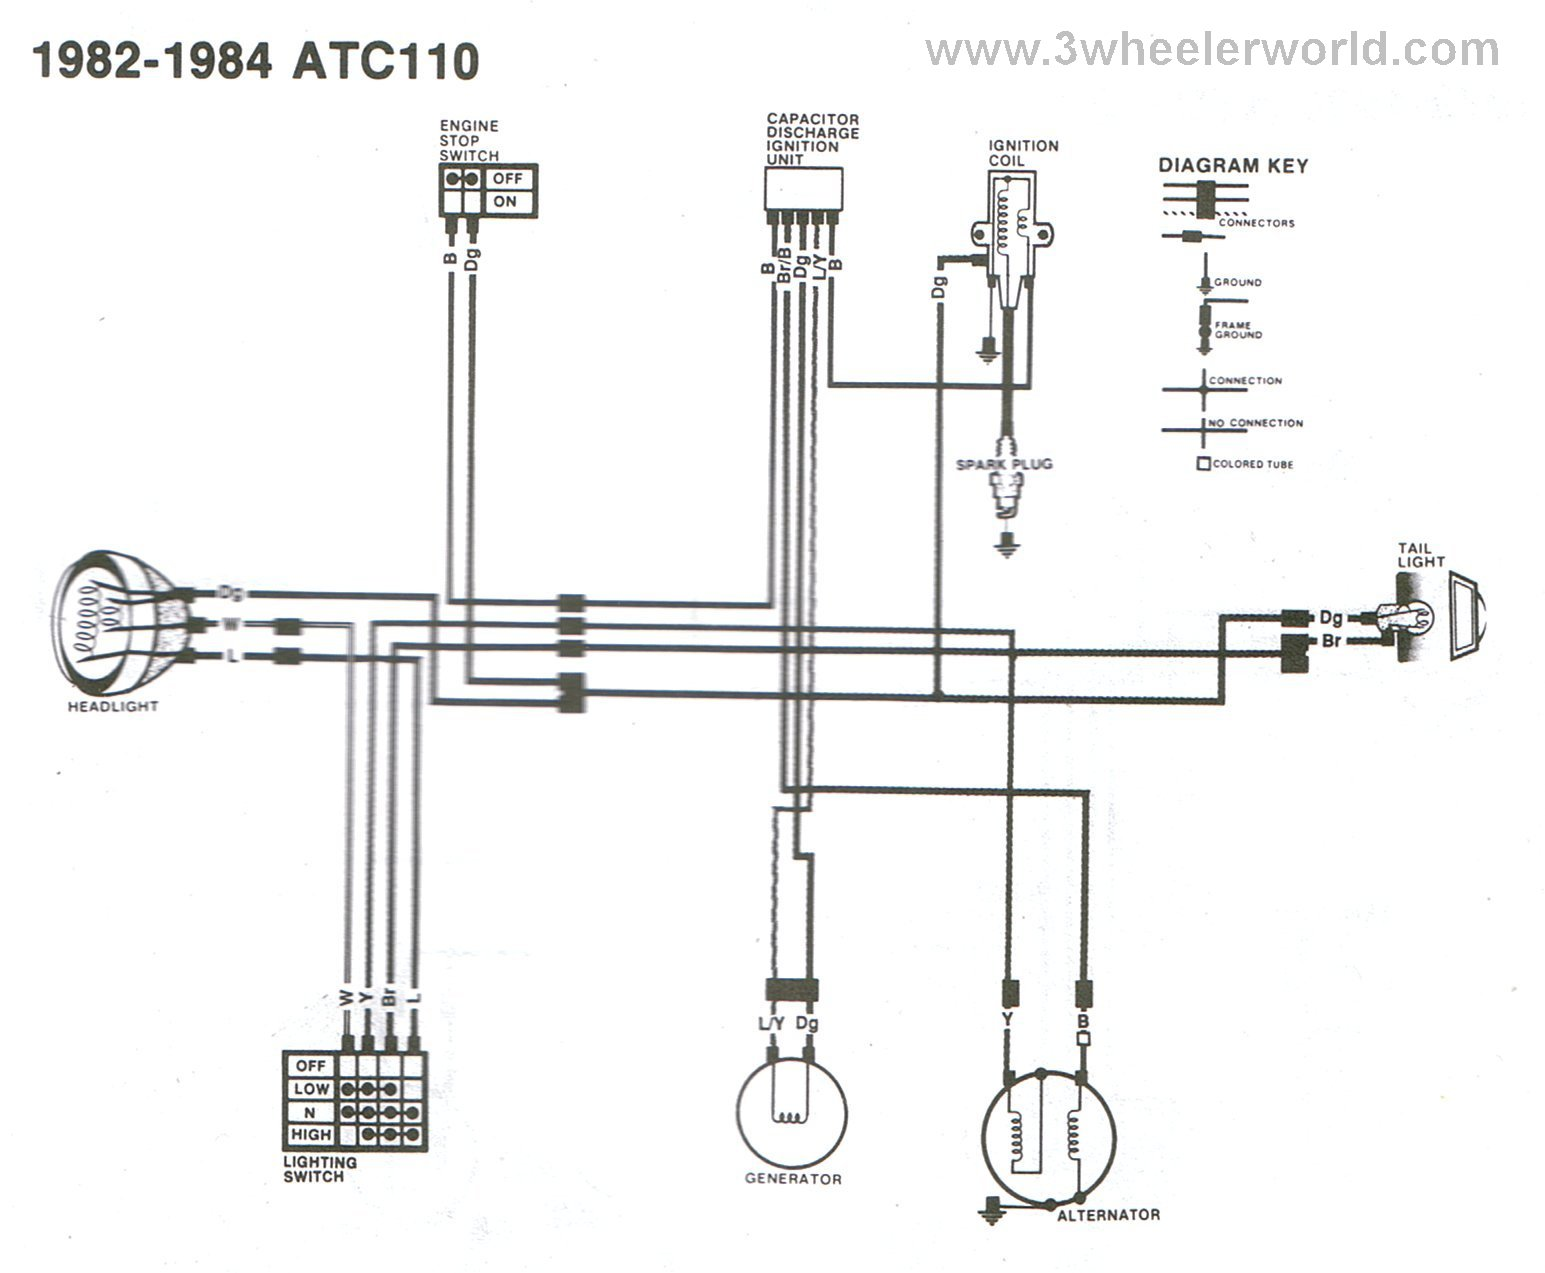 ATC110x82Thru84 3 wheeler world tech help honda wiring diagrams 1980 honda atc 110 wiring diagram at creativeand.co